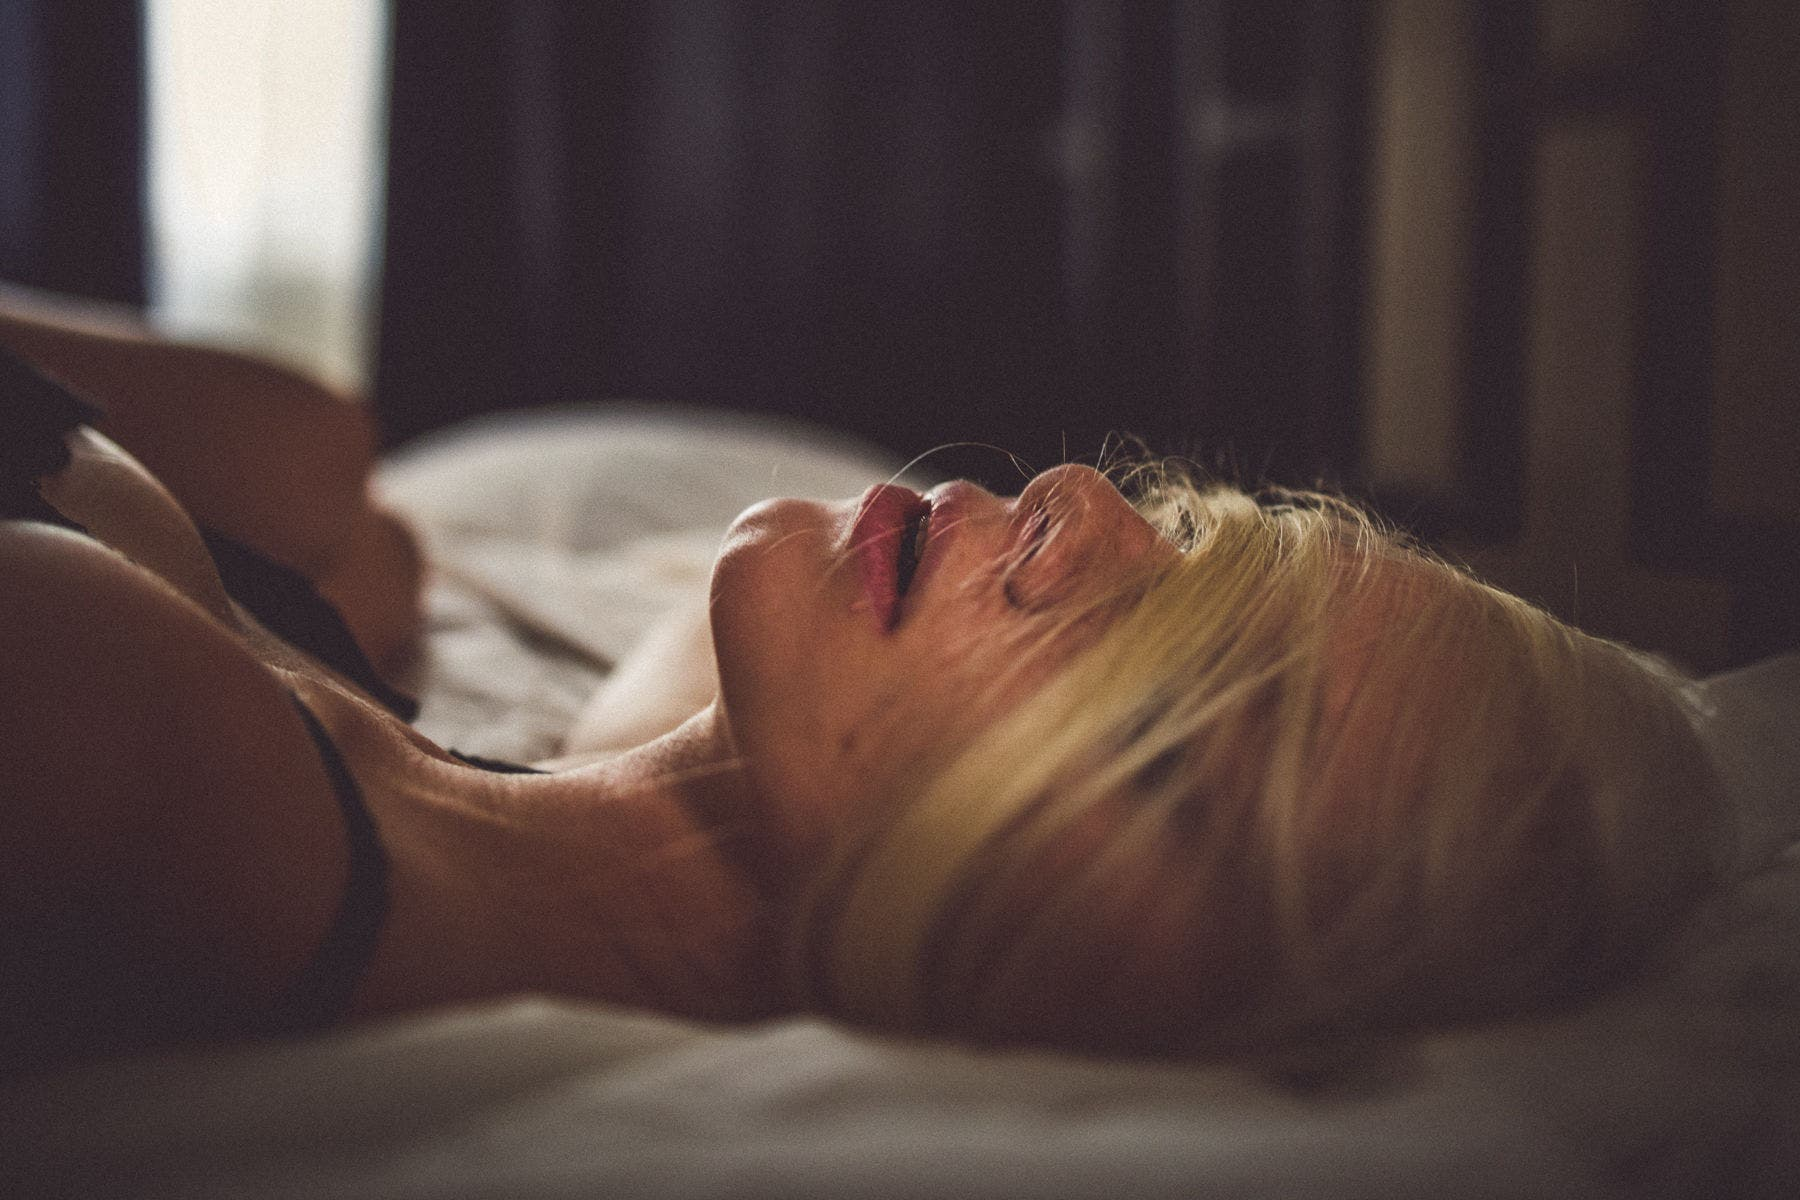 The Creative Mentality Behind Intimate Portraiture (NSFW)